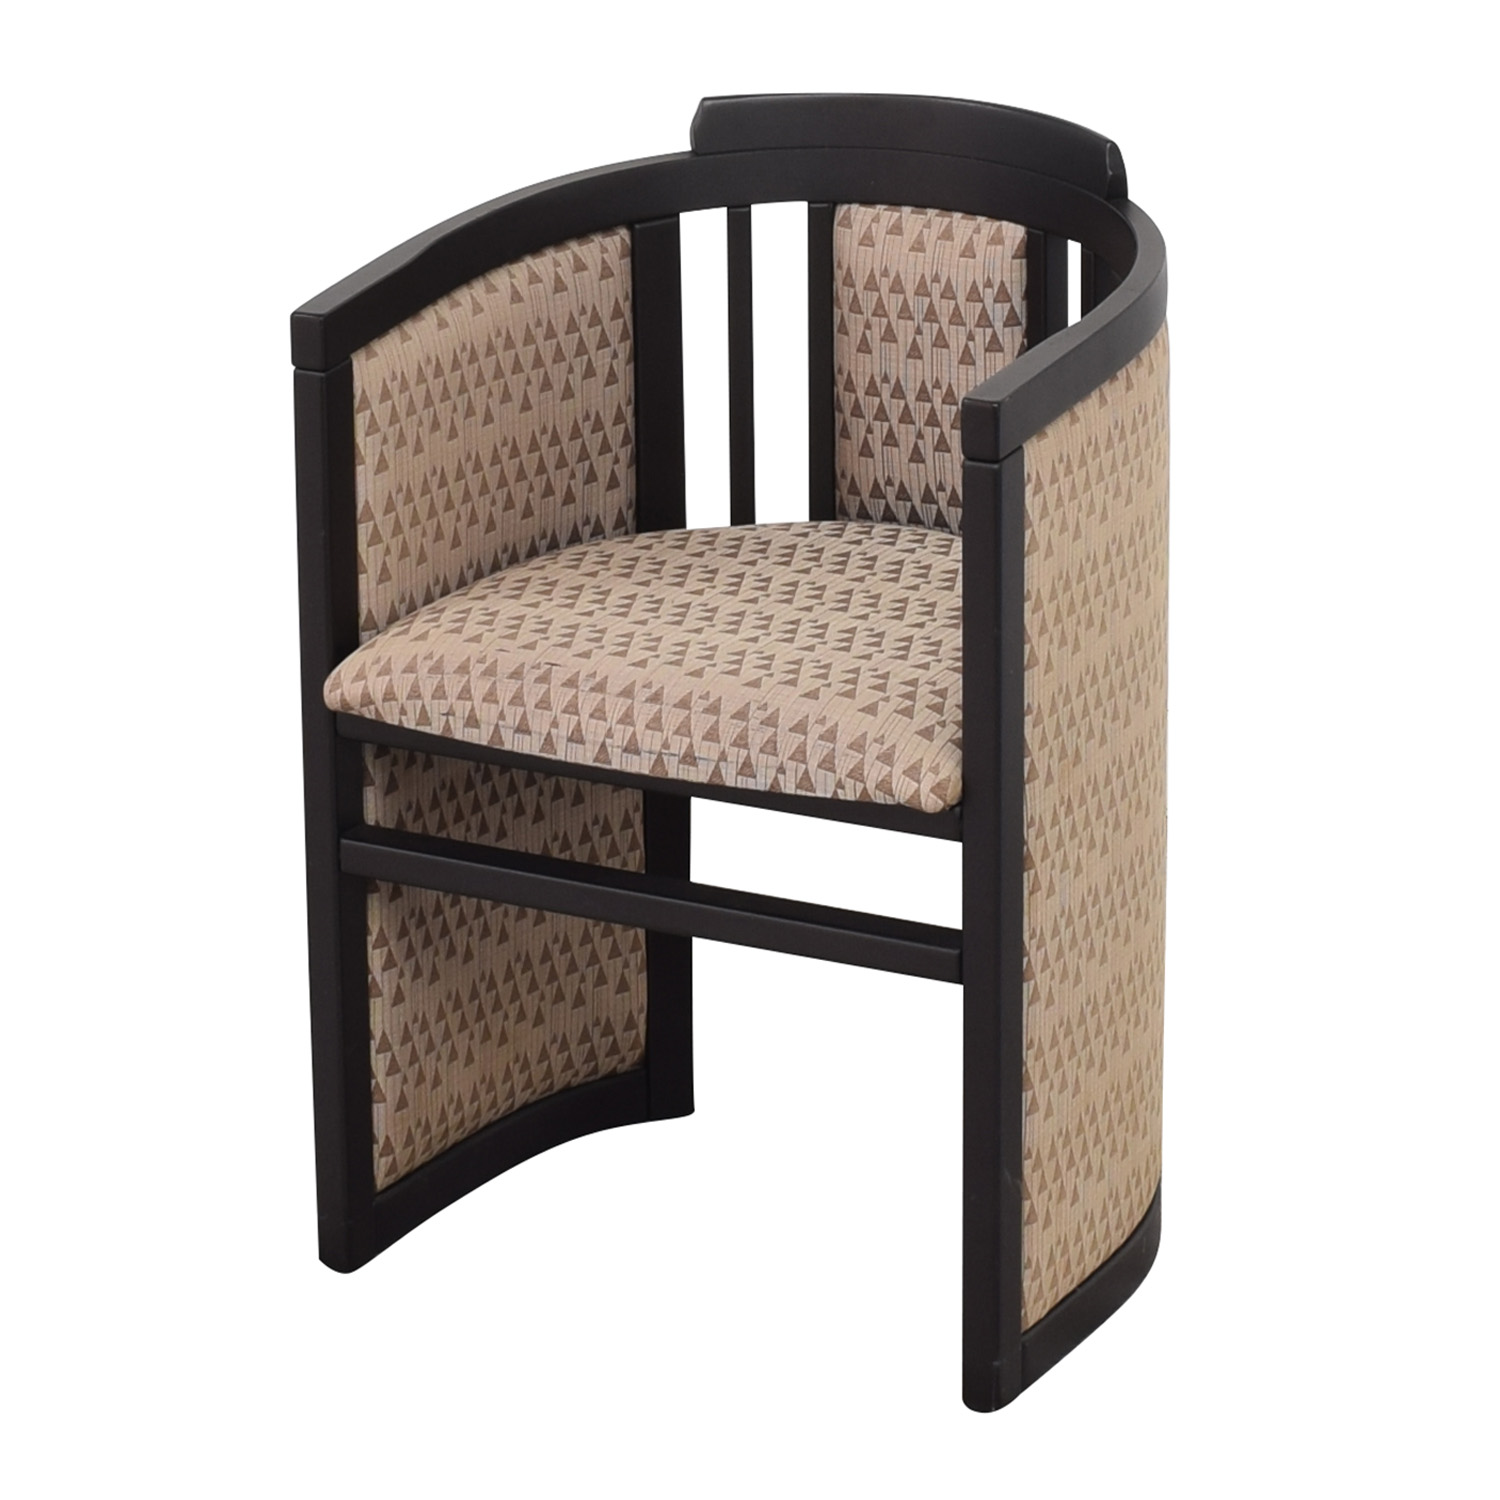 SA A. Sibau SA A. Sibau Accent Chair Accent Chairs